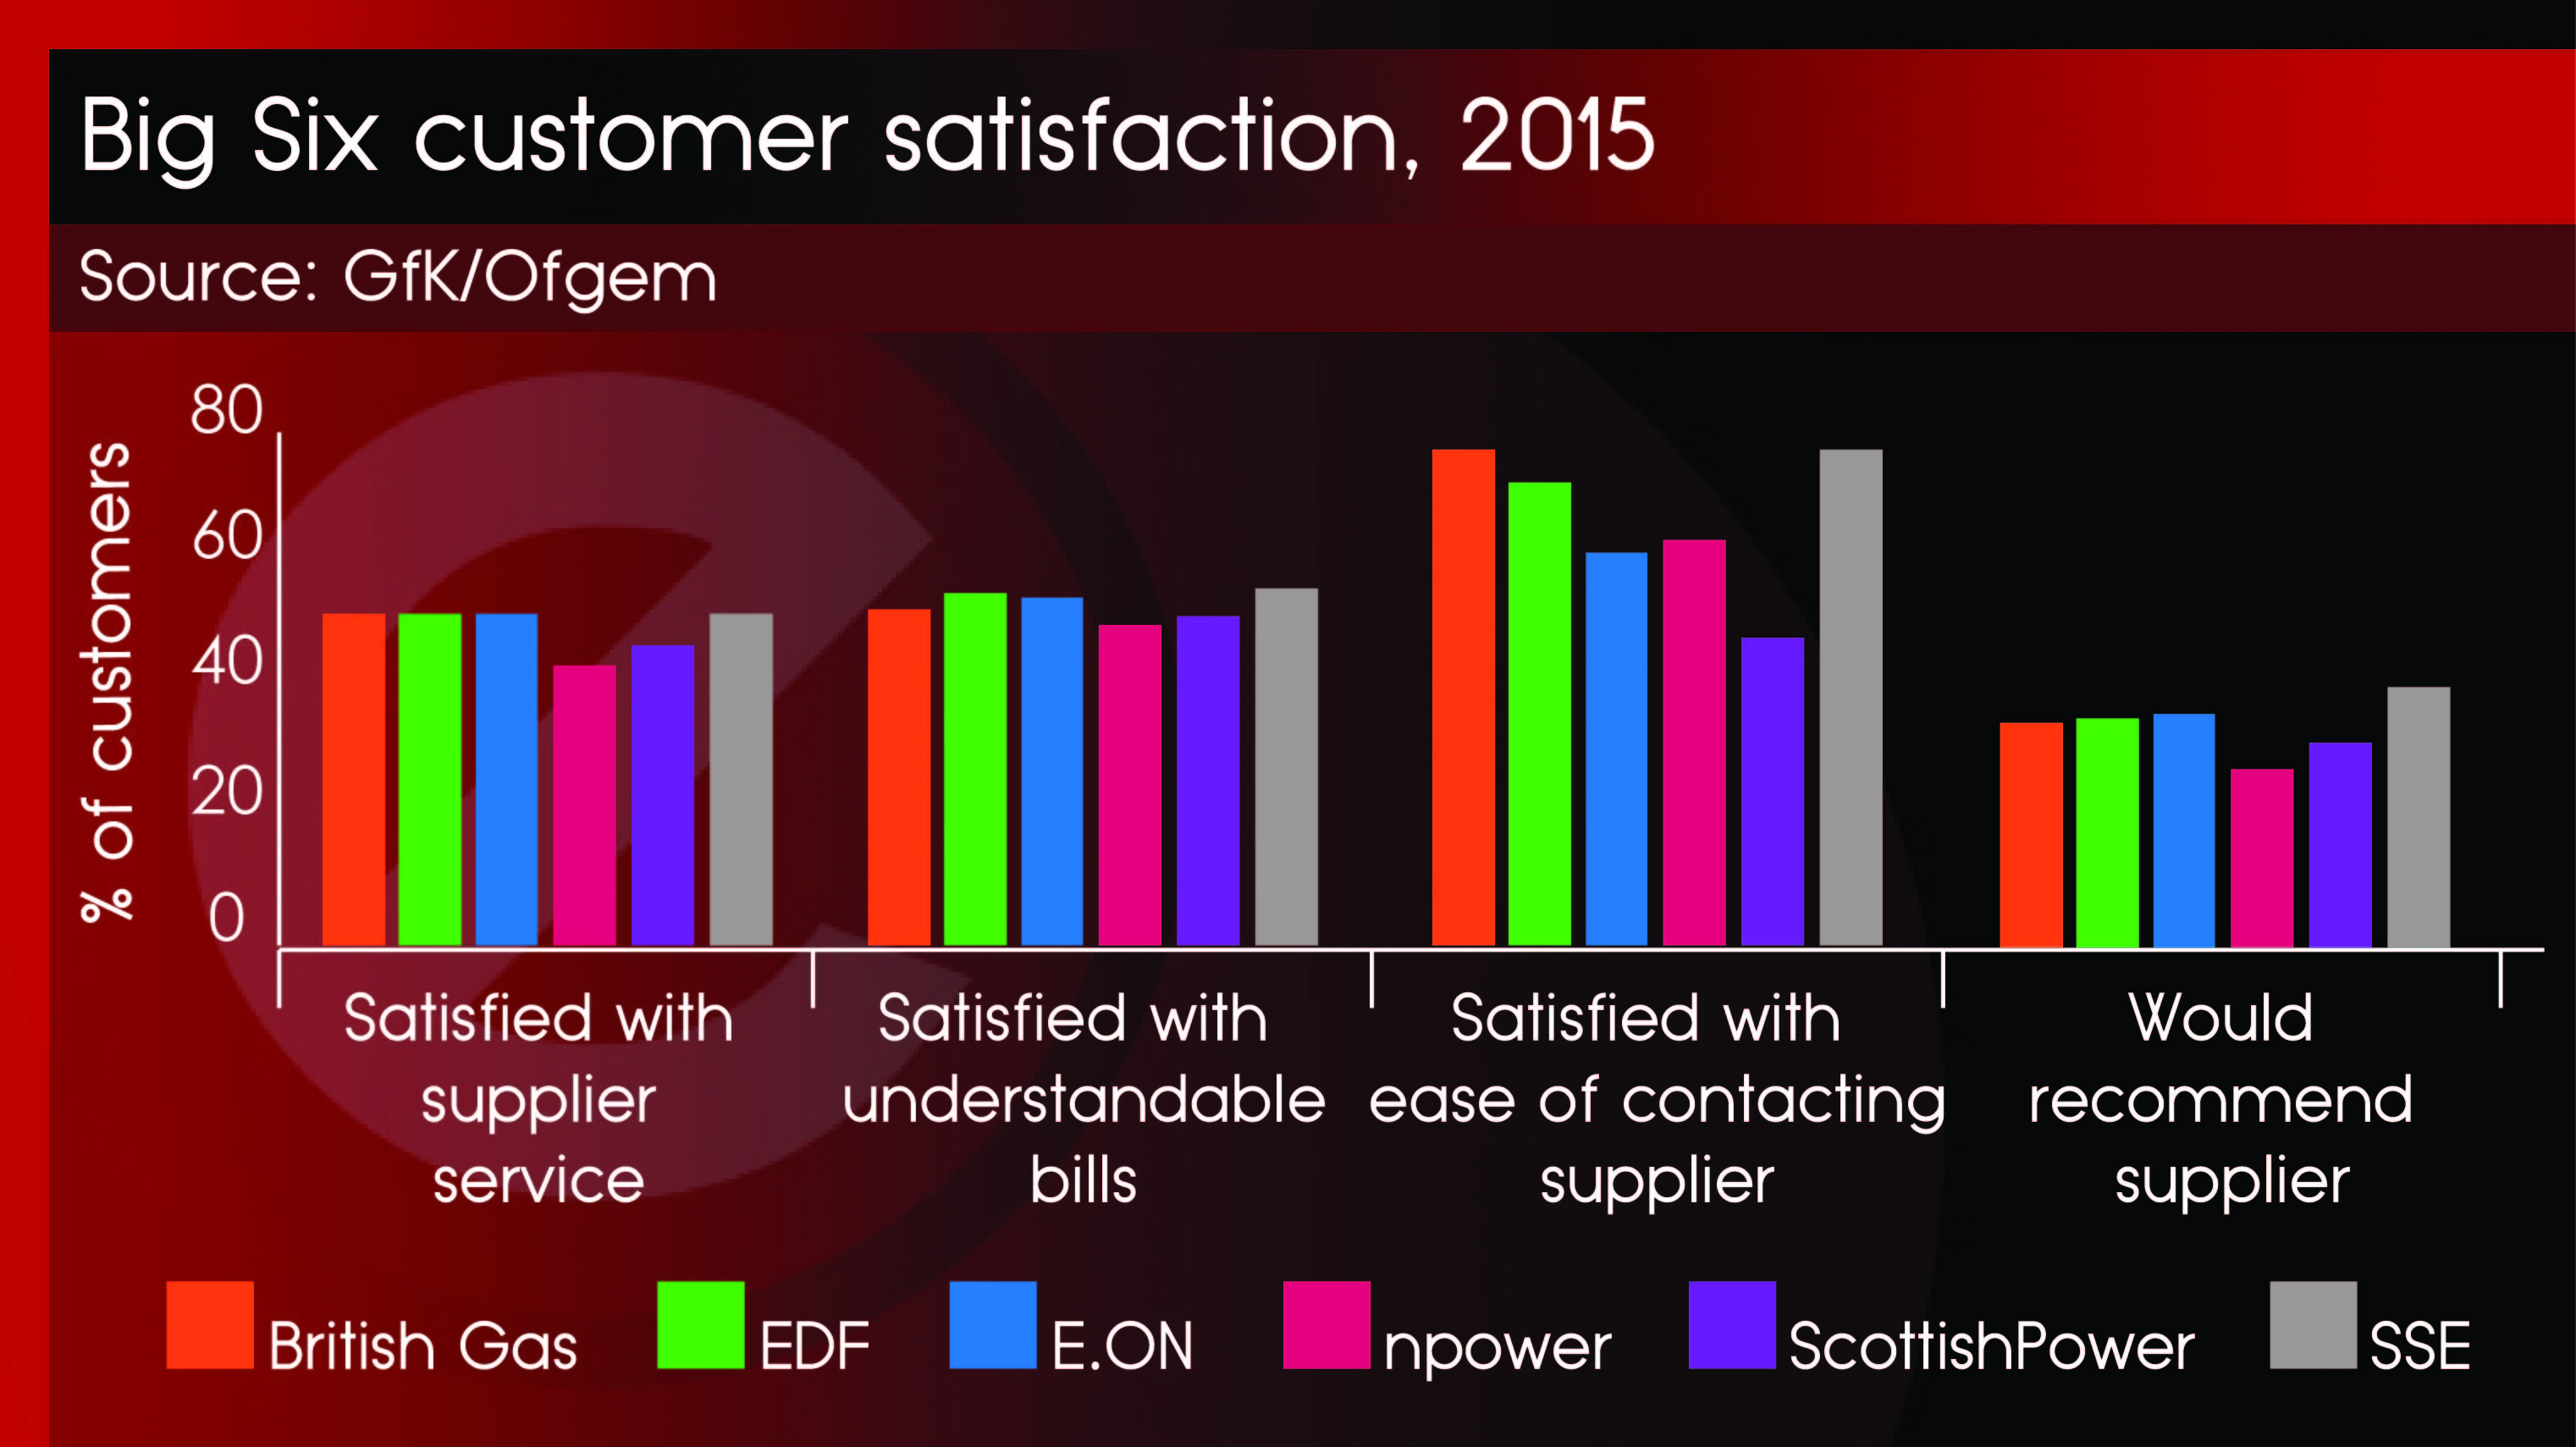 Big Six Customer Satisfaction - 11th Feb